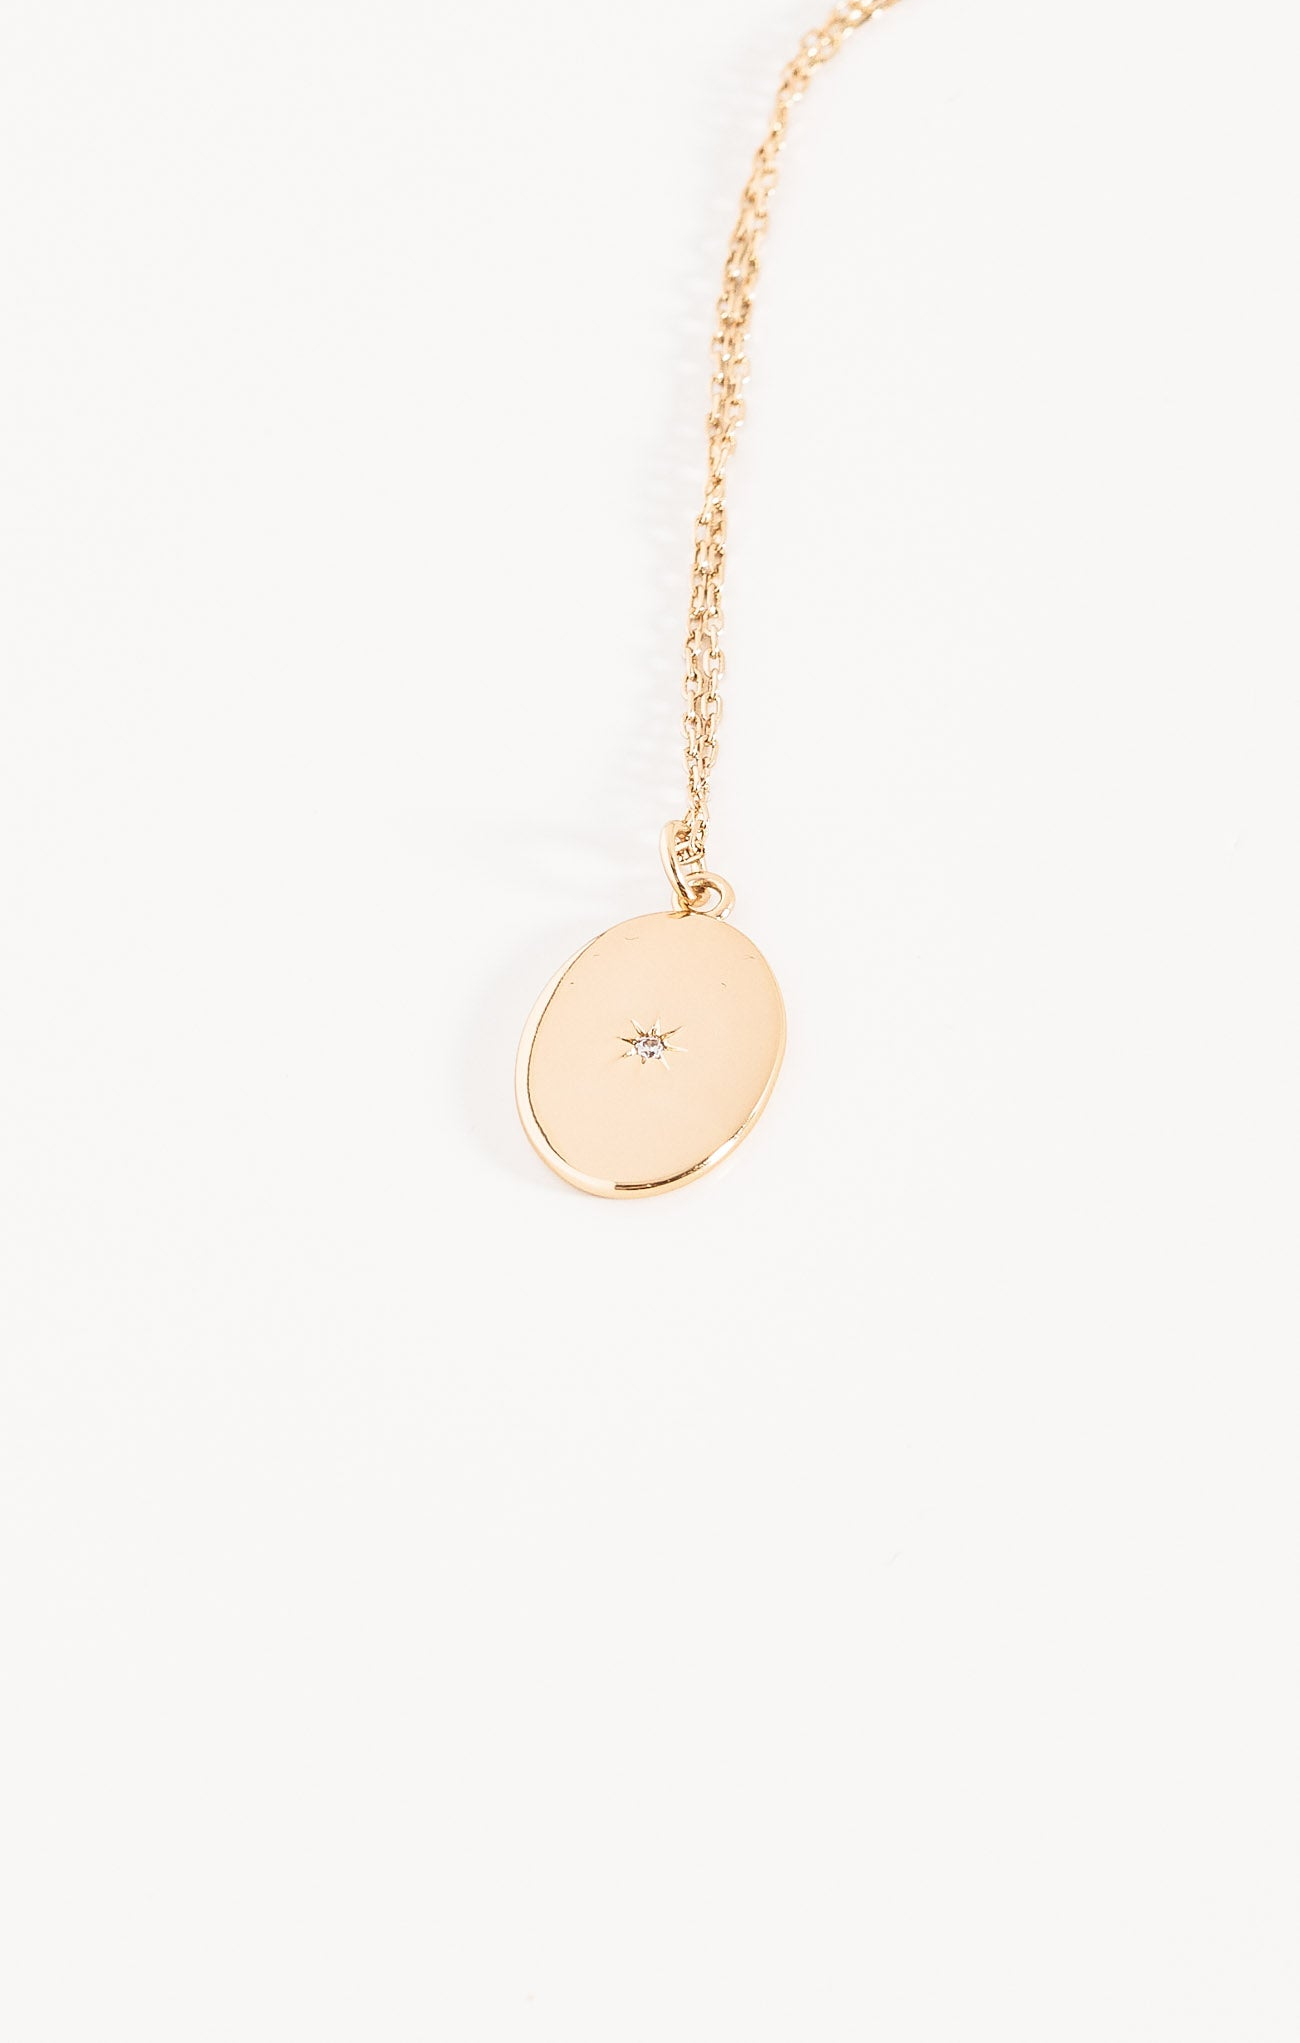 Jewelry Cora Necklace By Five And Two Cora Necklace By Five And Two